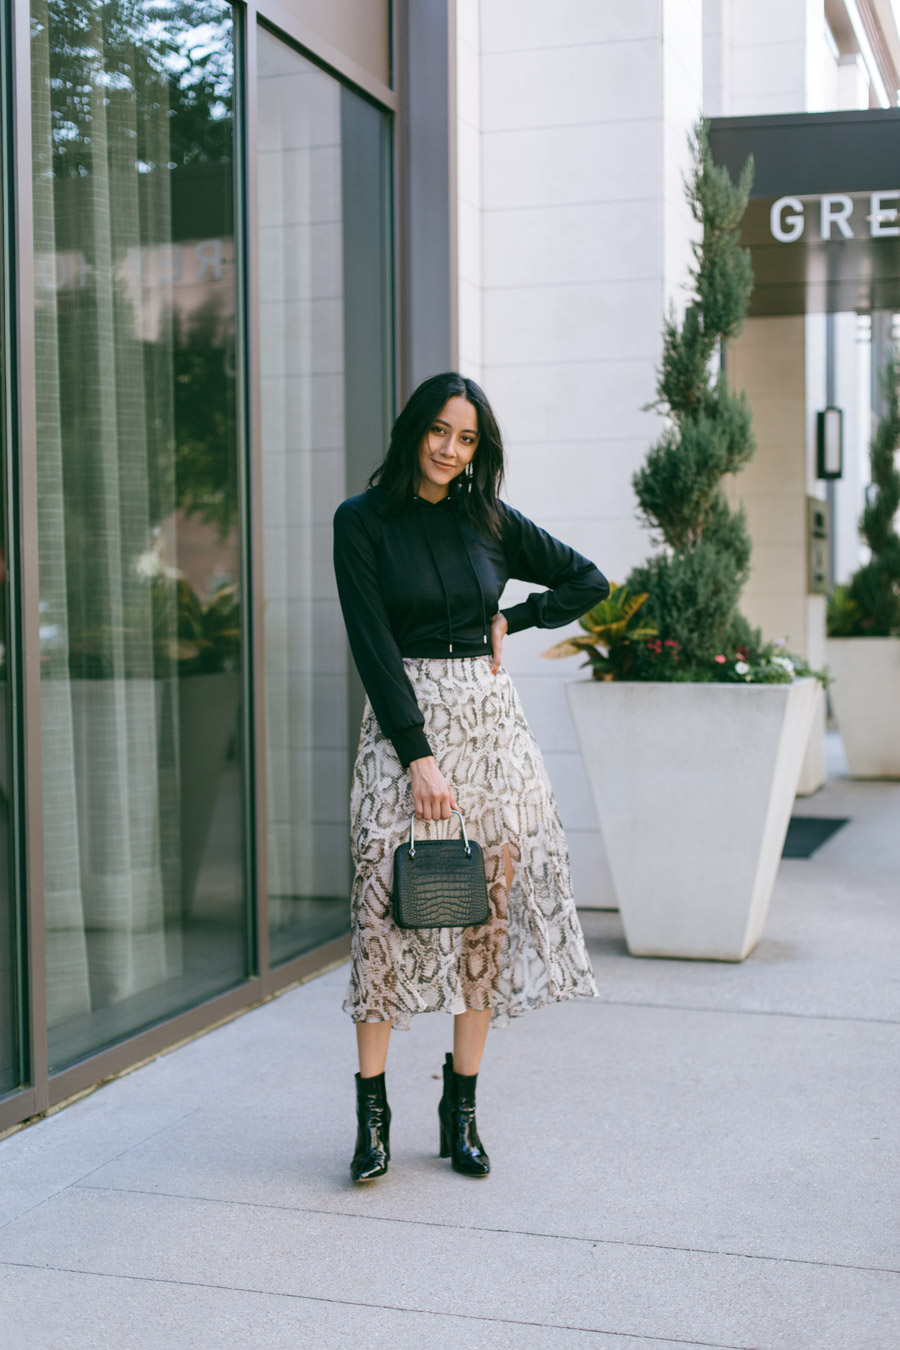 Are you loving the snake print trend this season? Fashion blogger Lilly B. teams up with her friends to share 3 different ways to wear snake print!